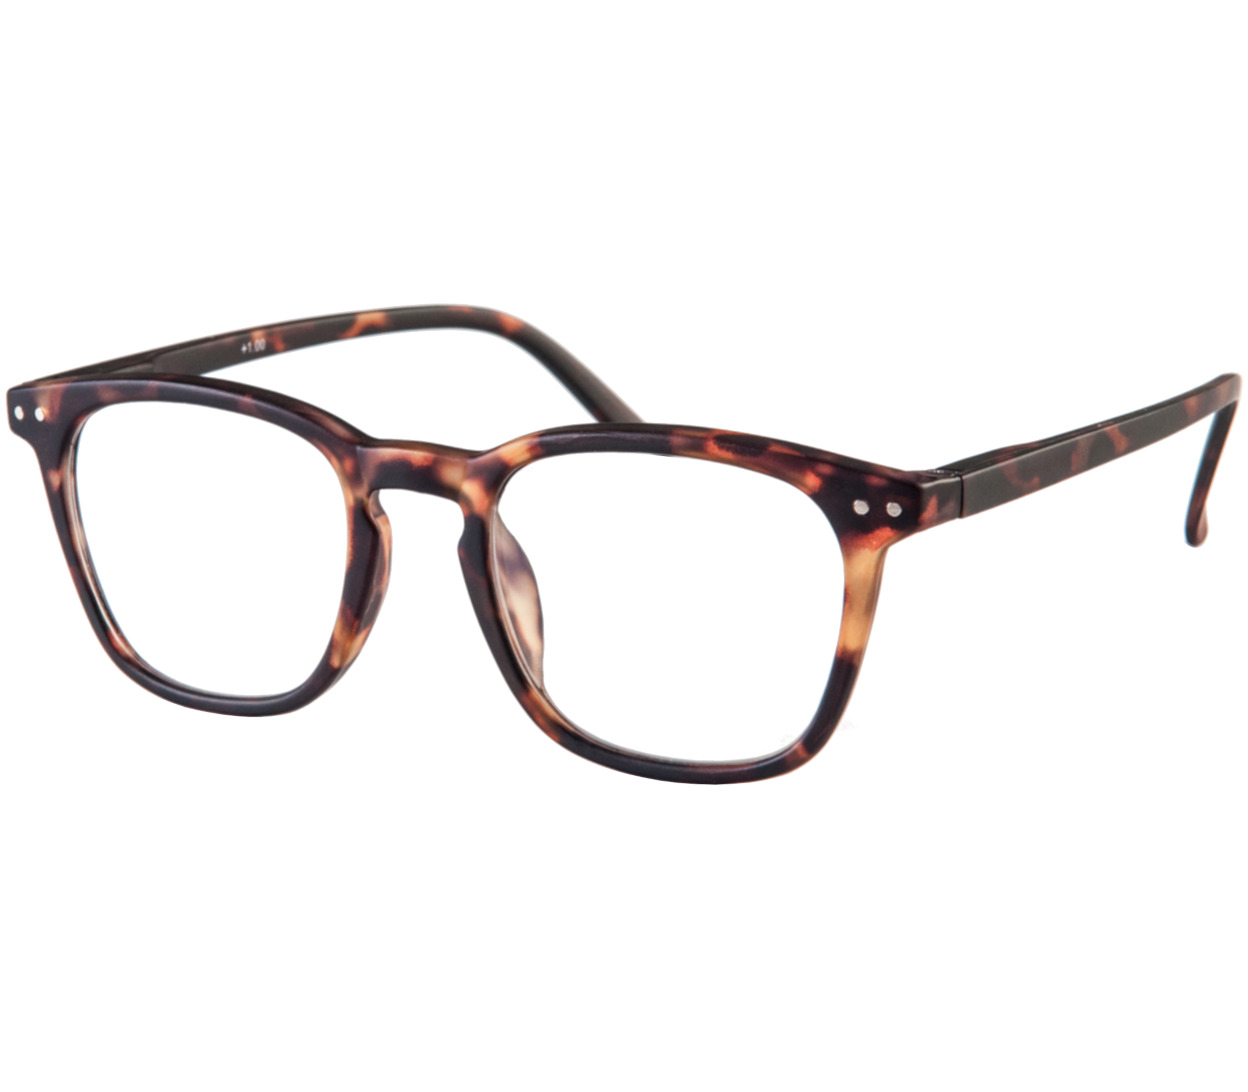 Main Image (Angle) - Scholar (Tortoiseshell) Reading Glasses